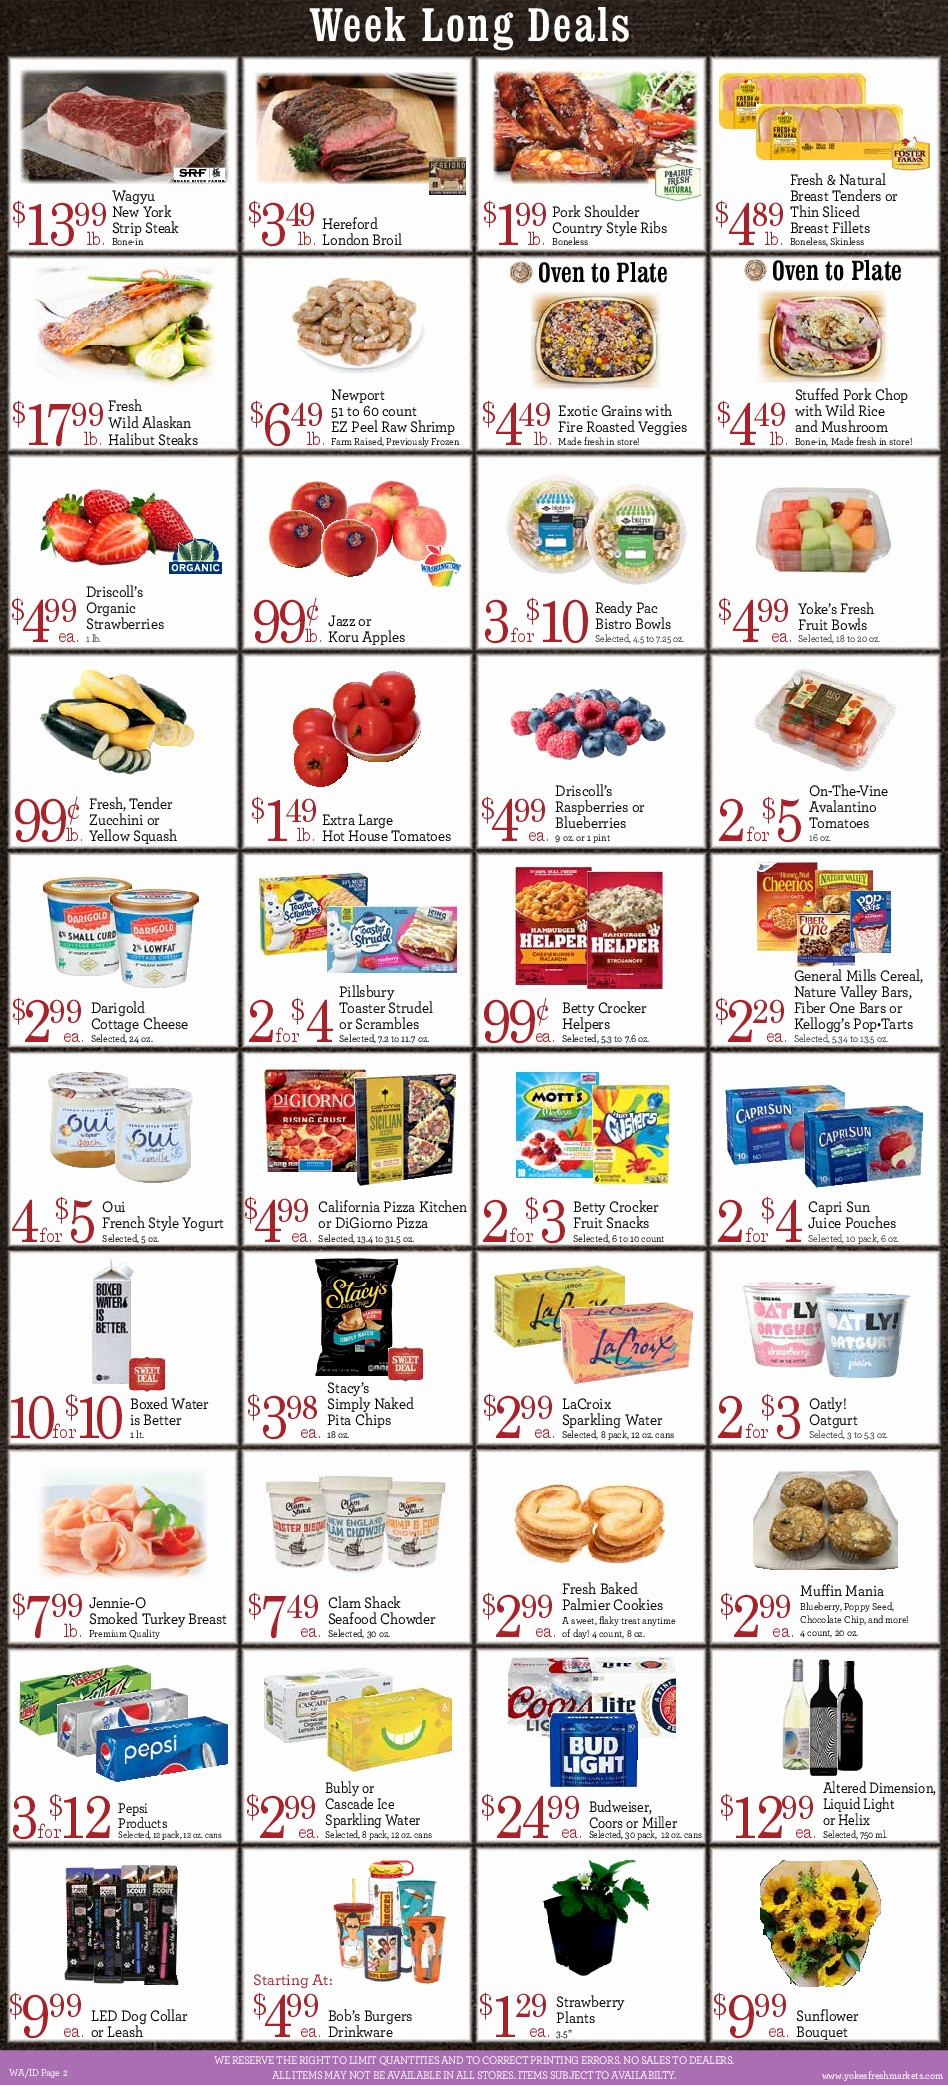 Page 2 of 04.07.21 Weekly Ad